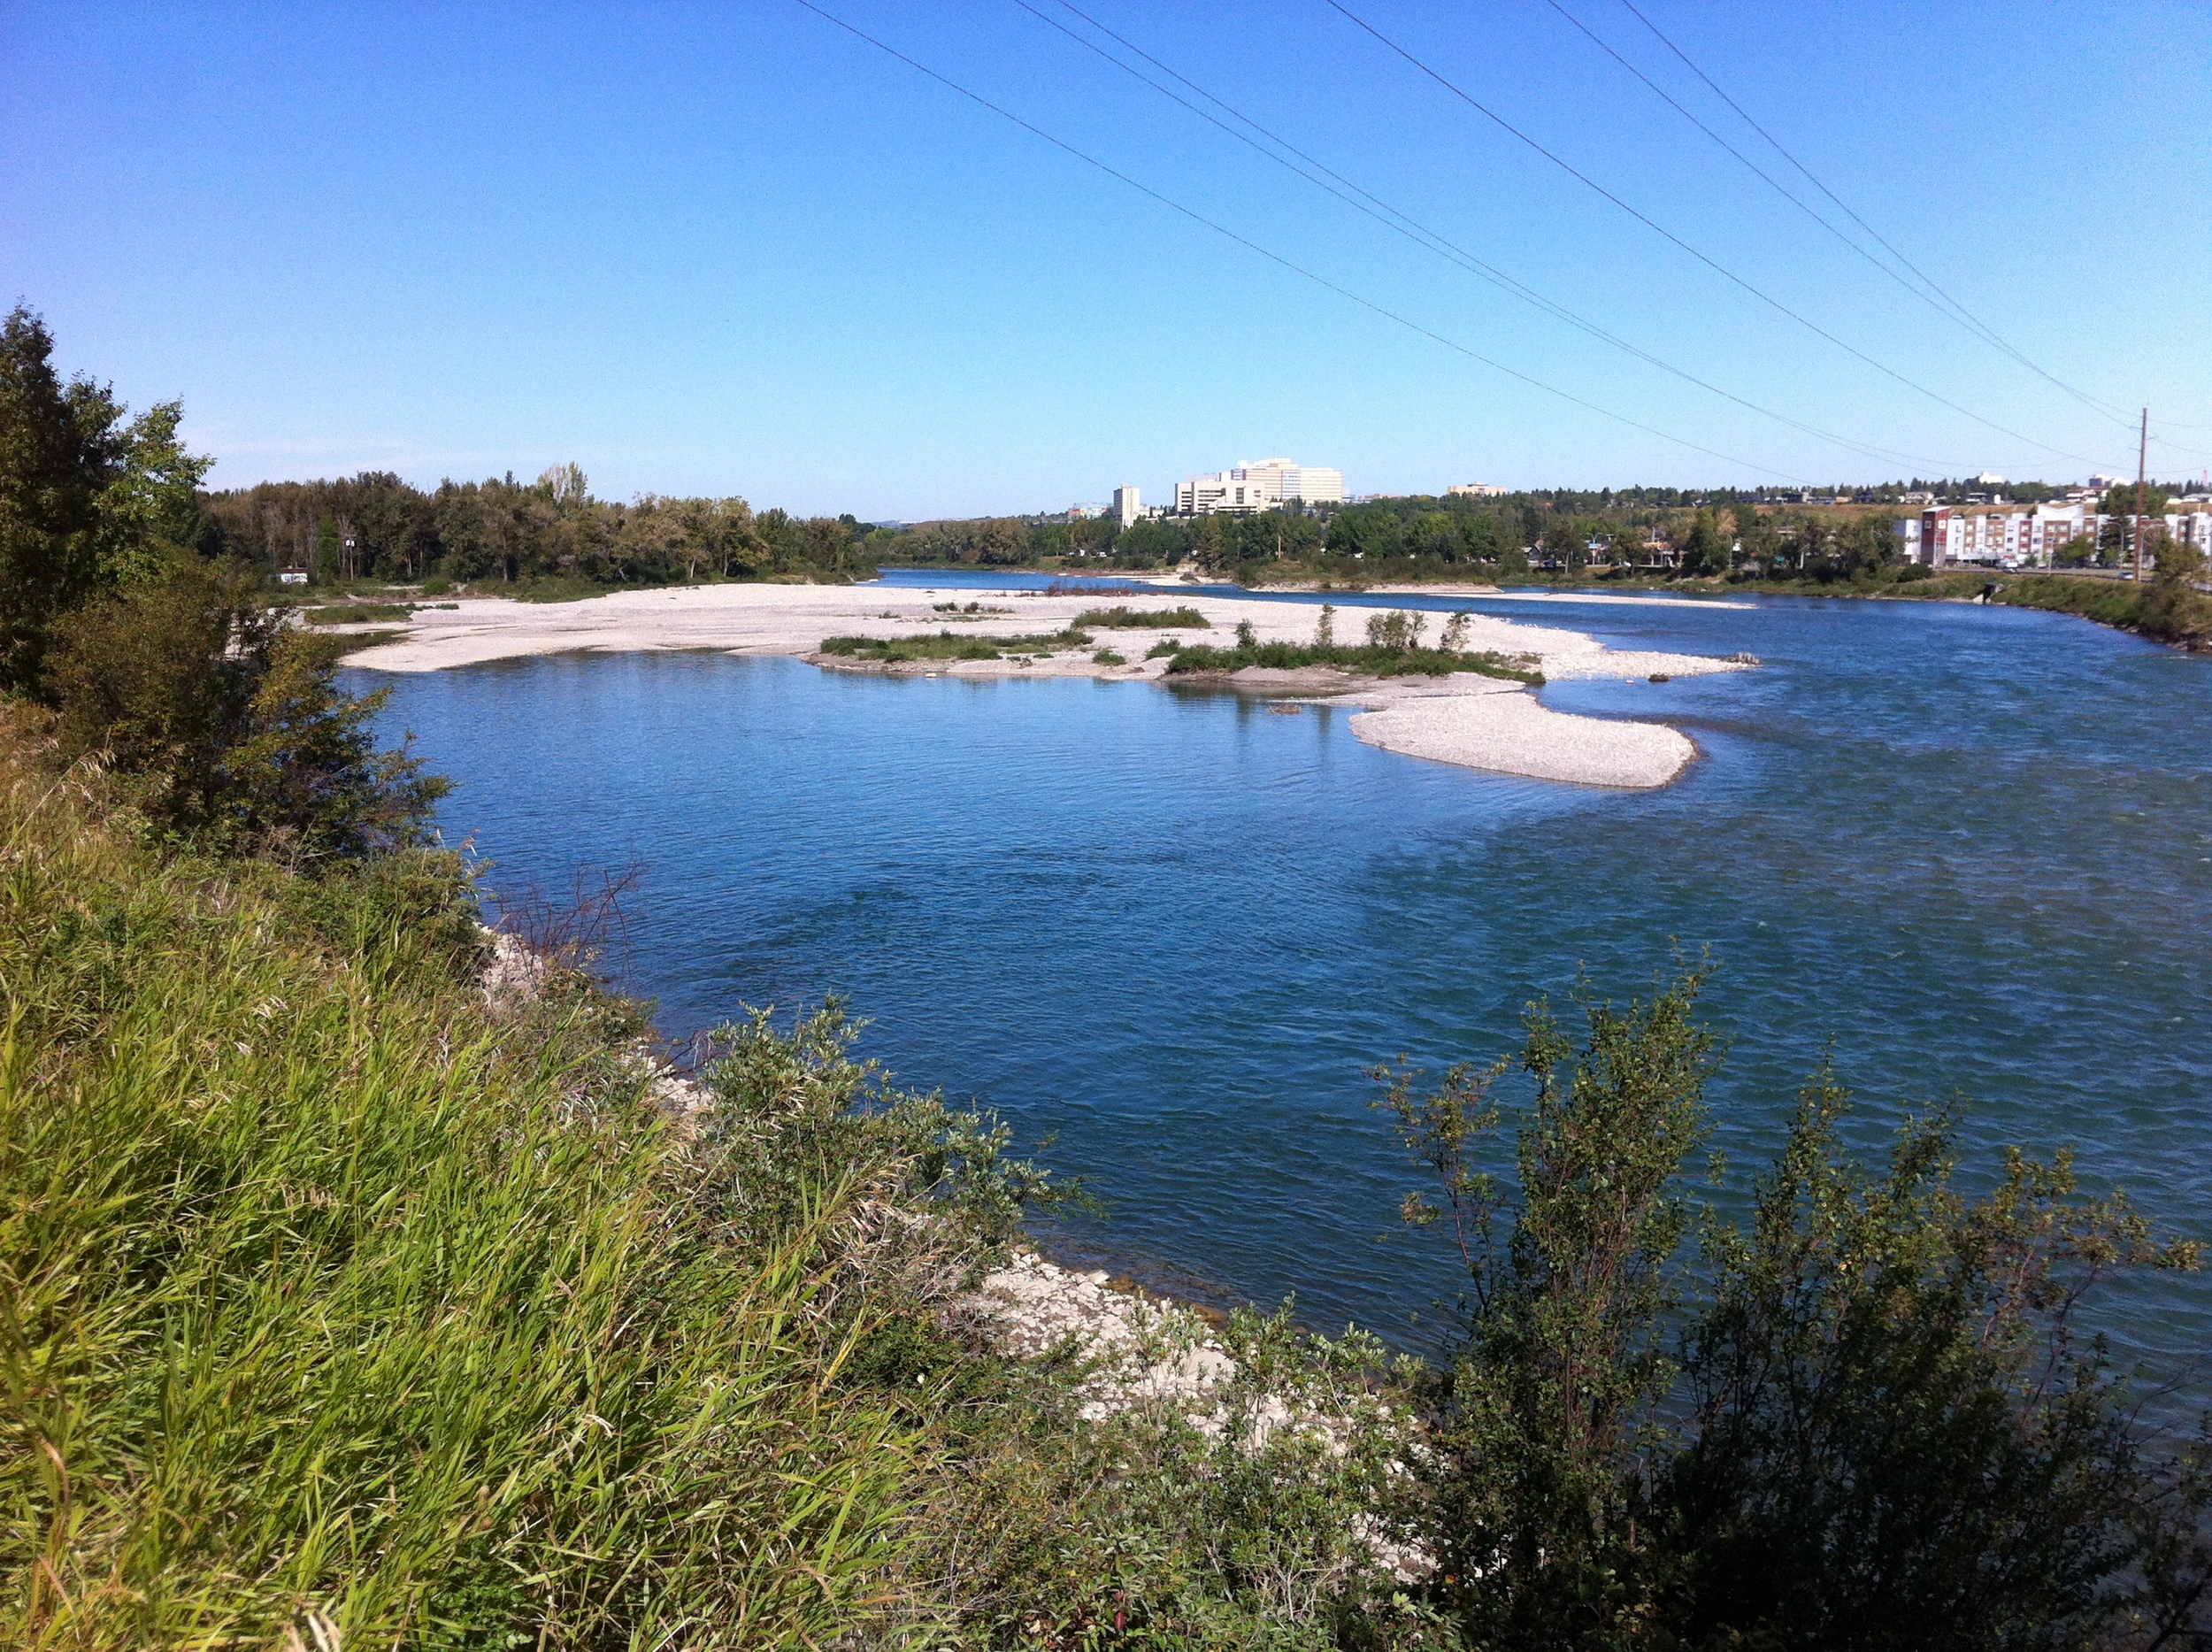 The Crowchild Trail gravel bar has the look of a white sand beach complete with its own lagoon and blue/green water.